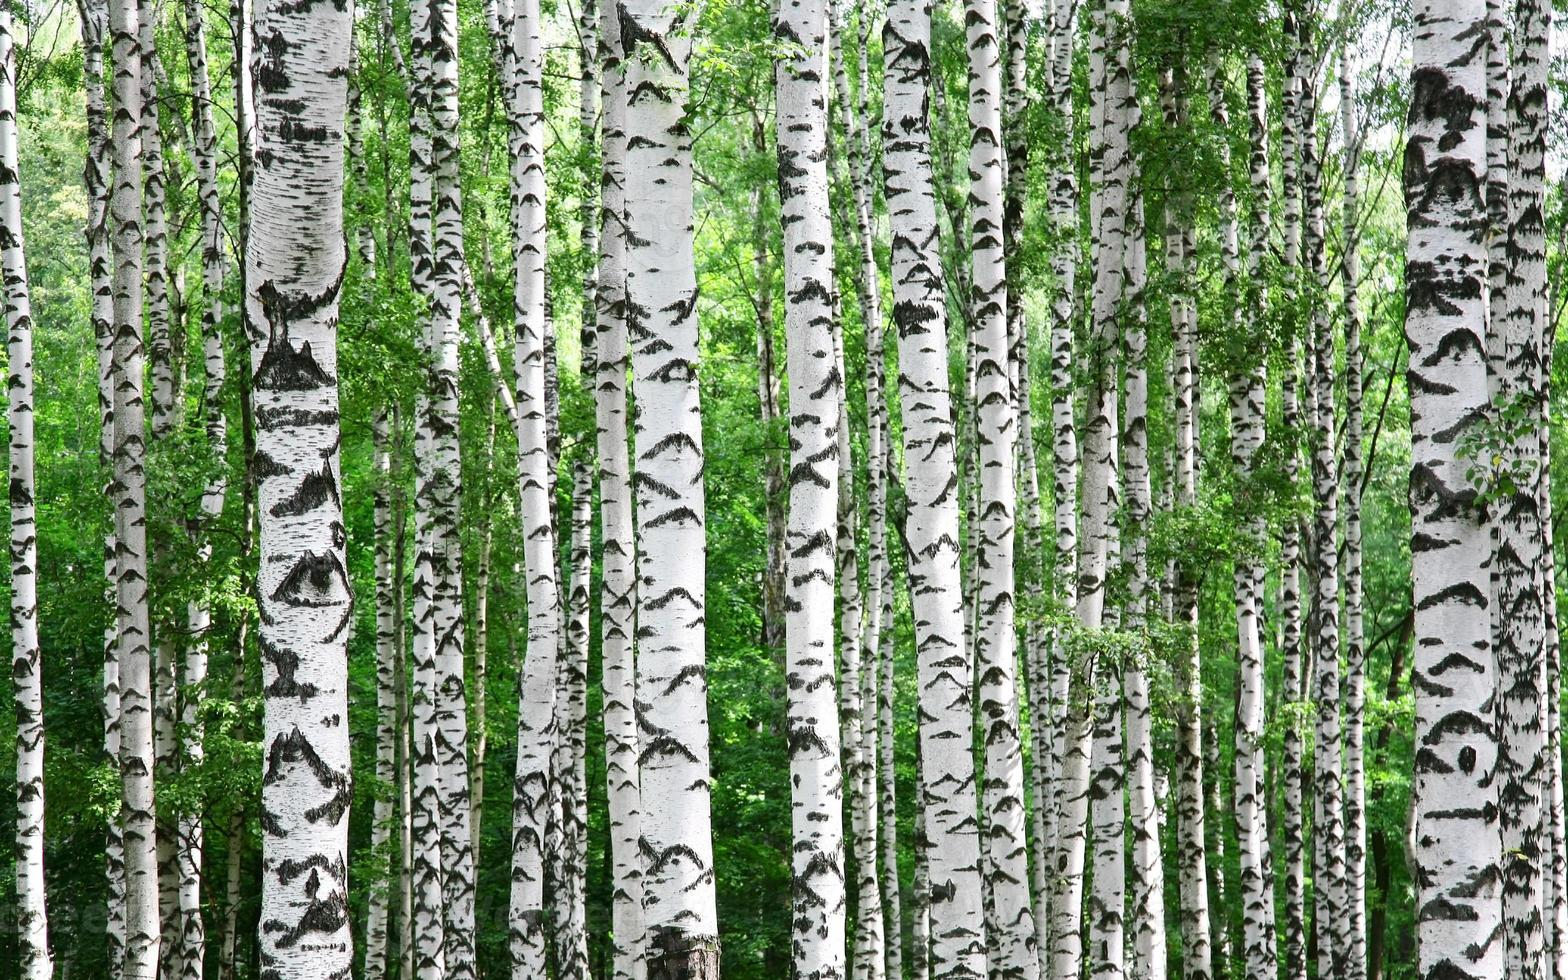 Trunks of birch trees in summer photo